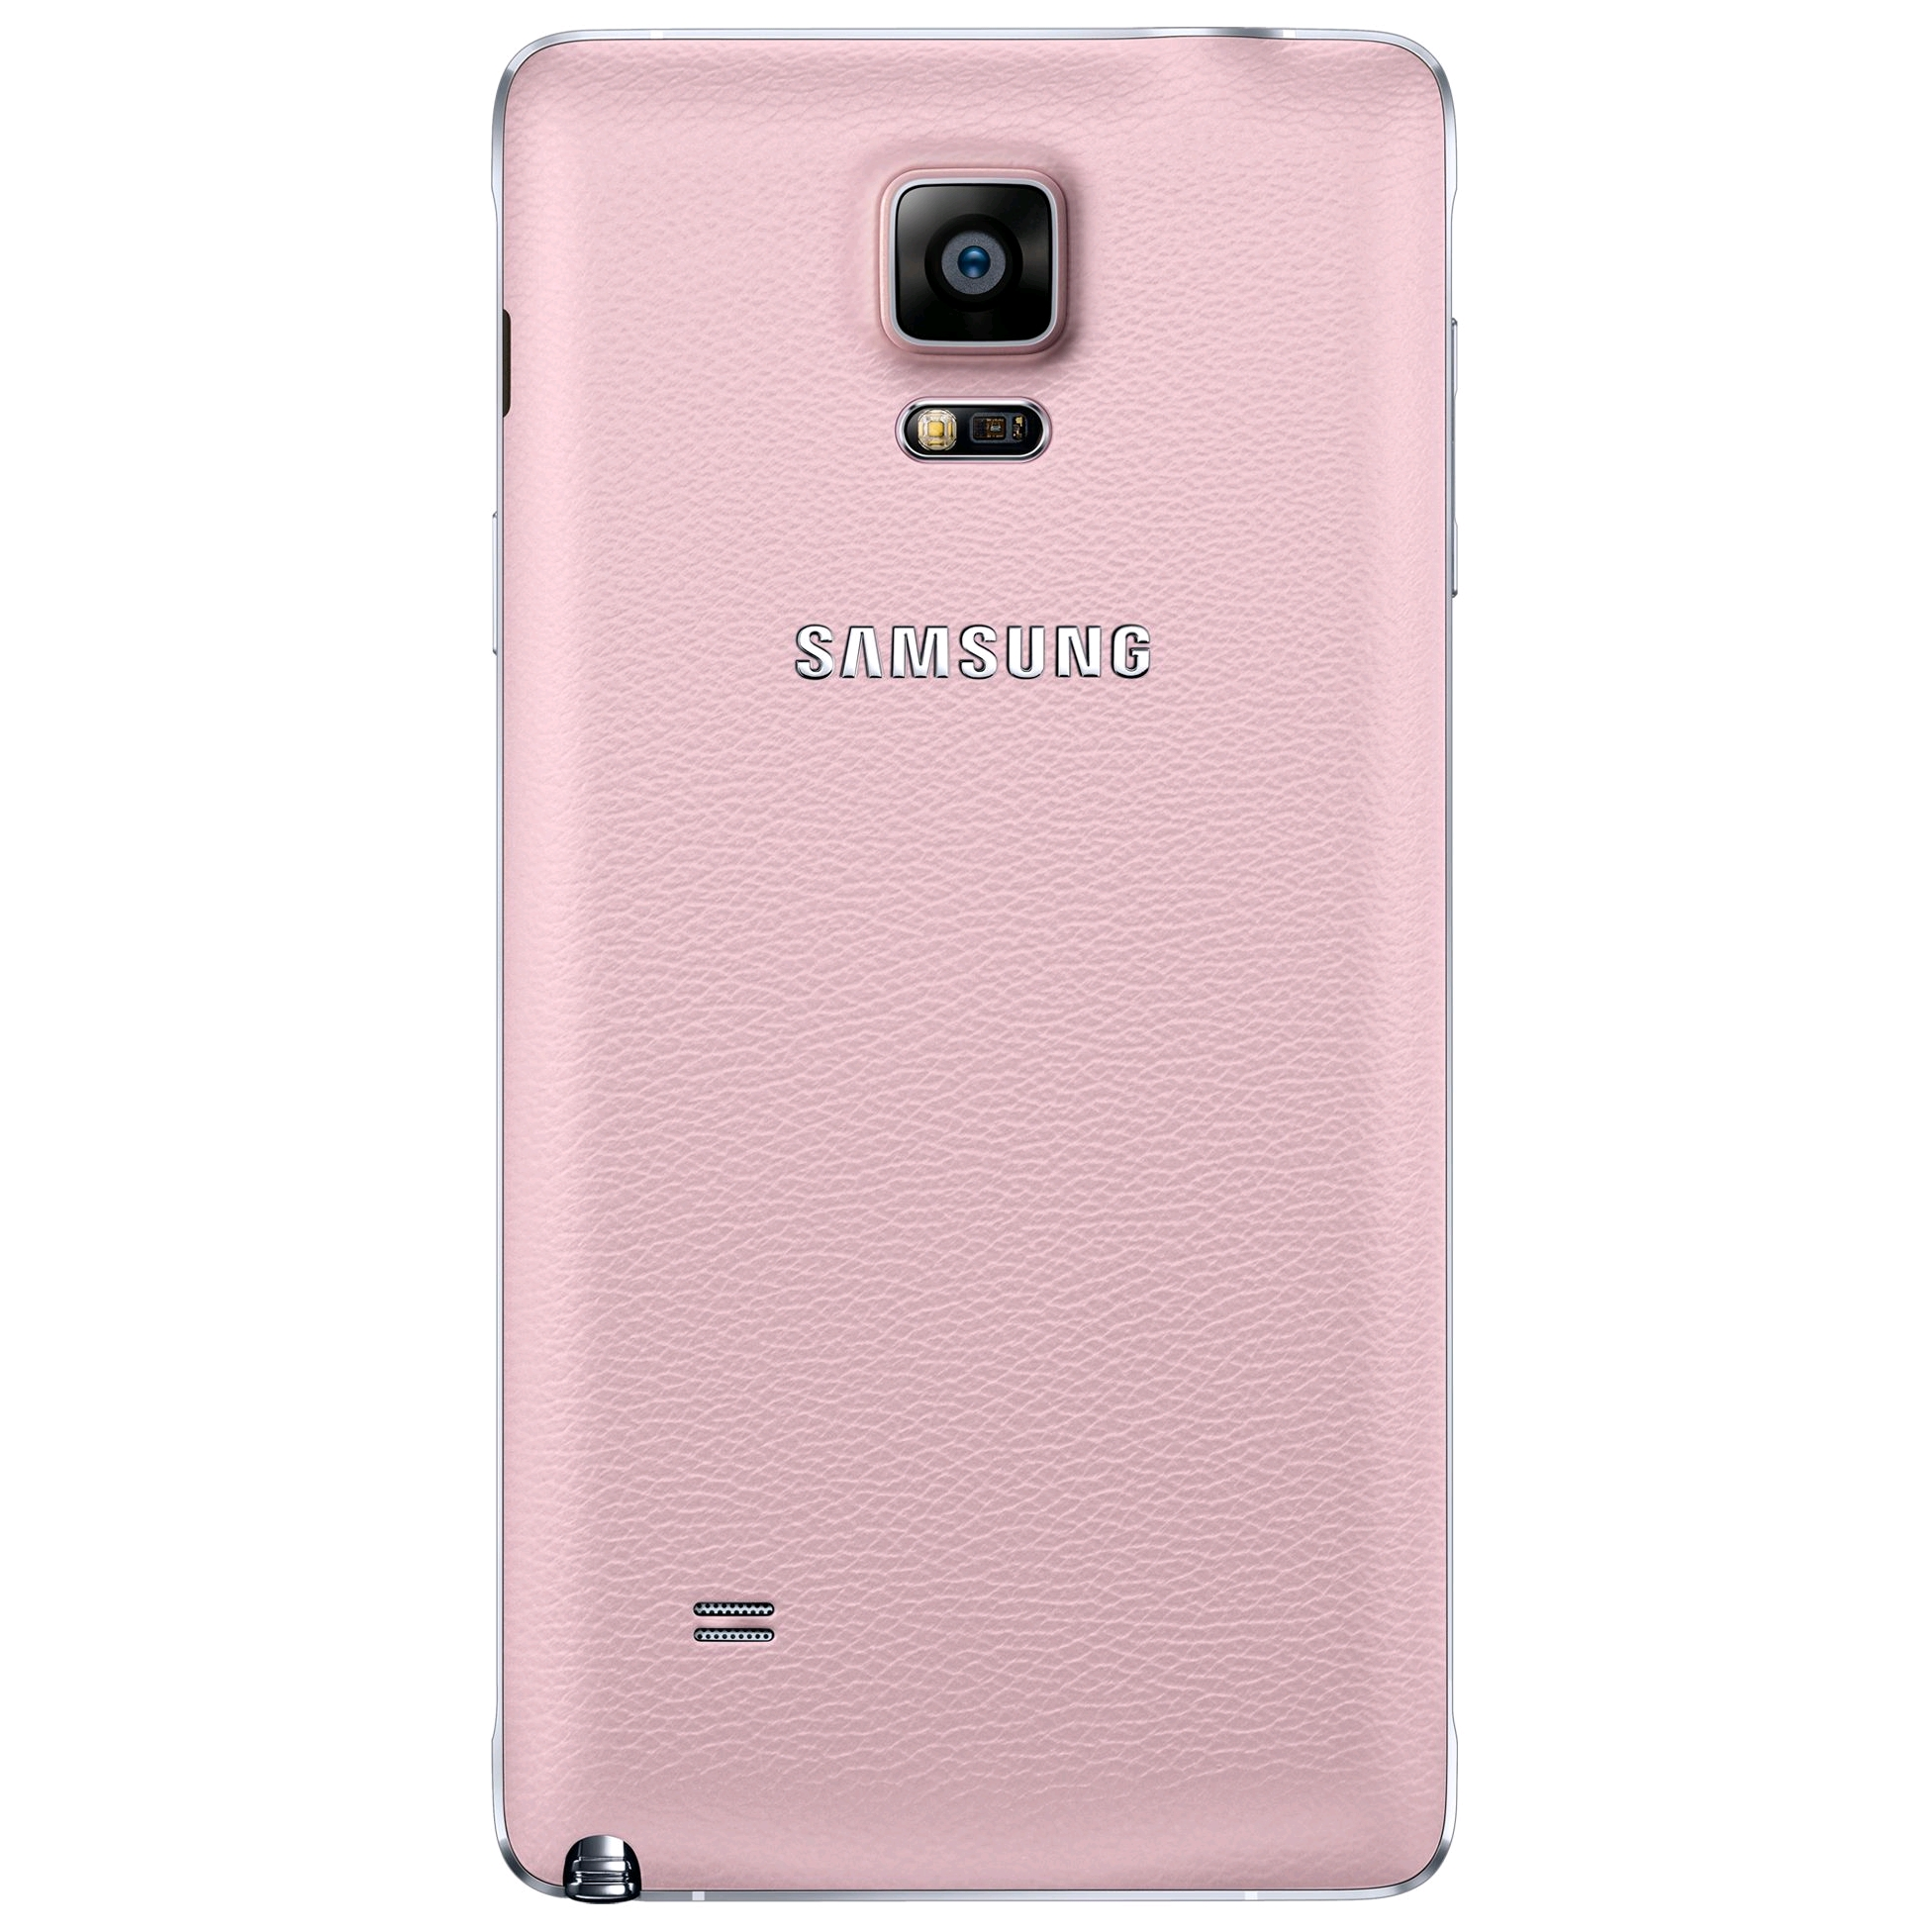 samsung back cover for samsung galaxy note 4 blossom pink